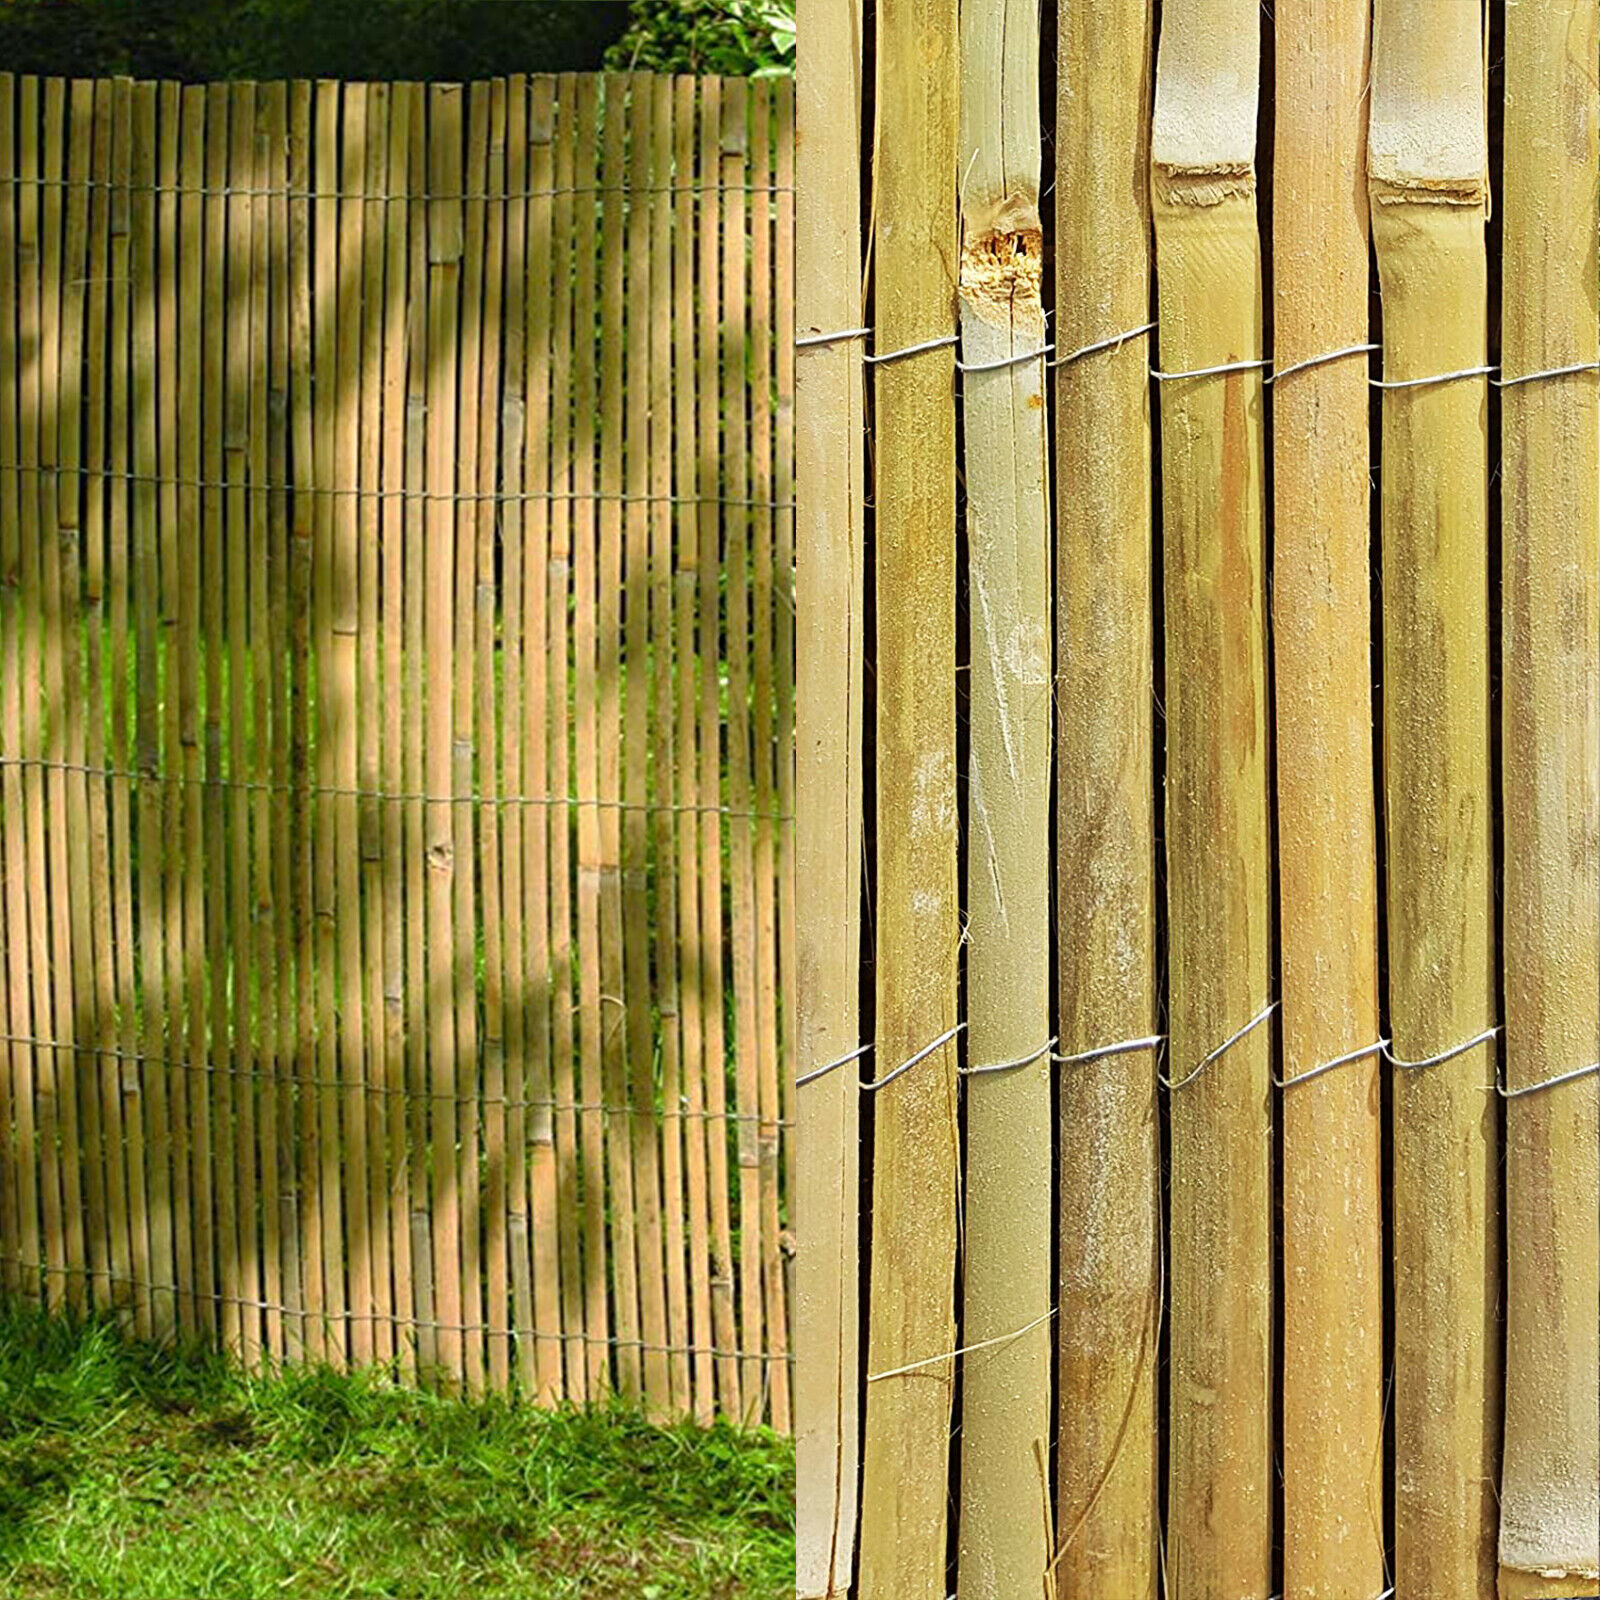 4m Slatted Bamboo Fence Screening Roll Natural Slat Panel Privacy Garden Penal Ebay